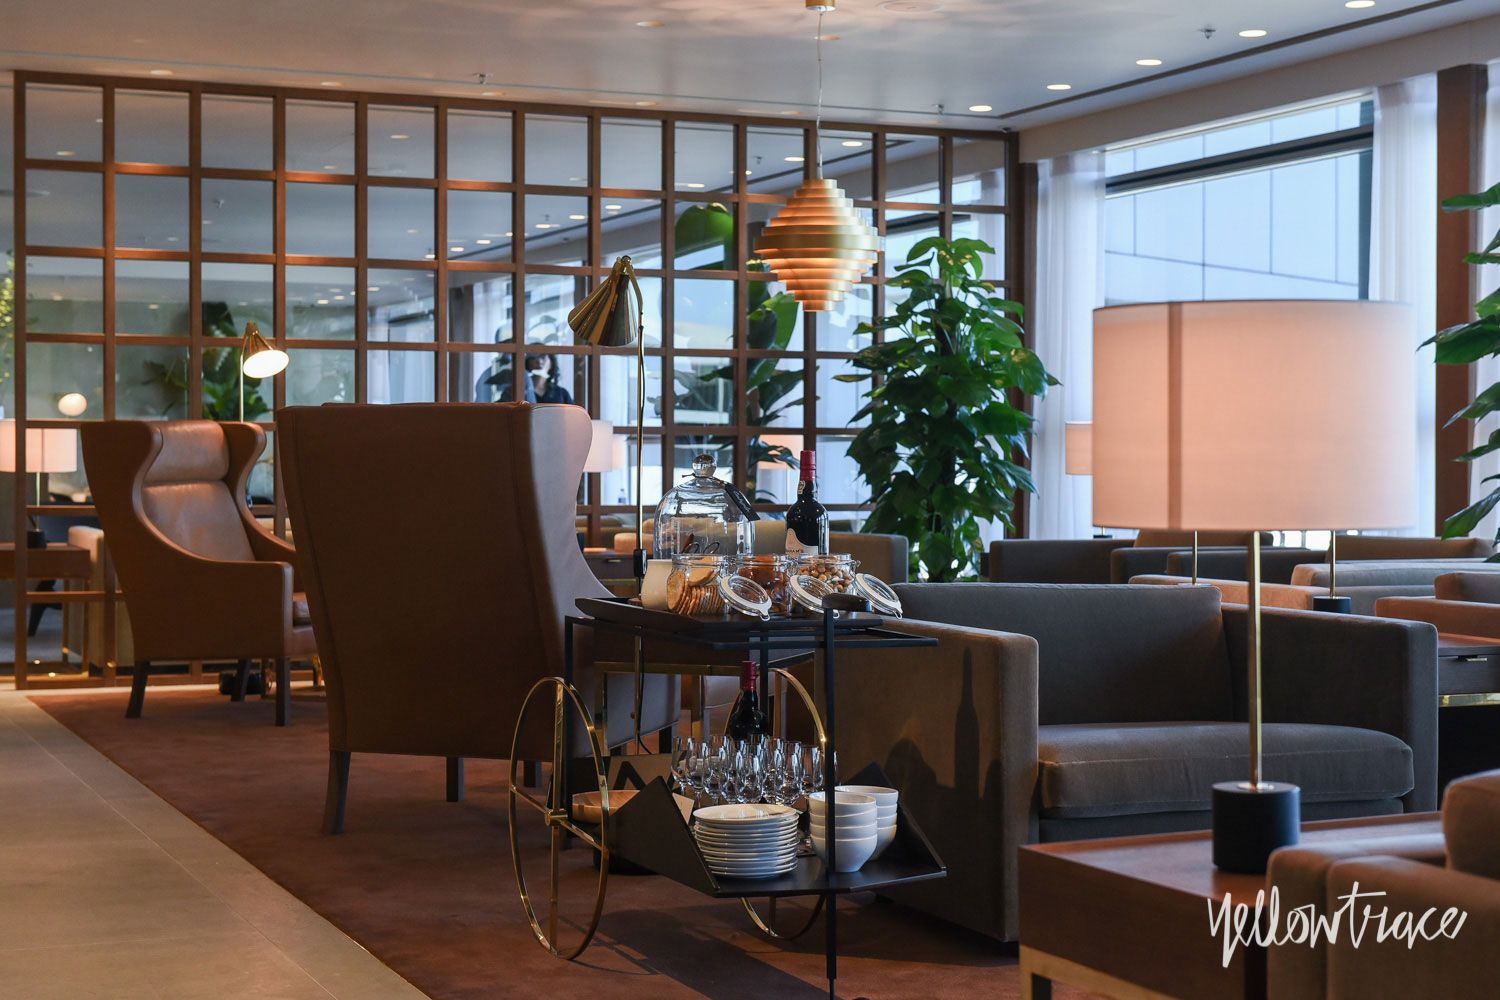 Cathay Pacific\'s The Pier First Class Lounge in Hong Kong.